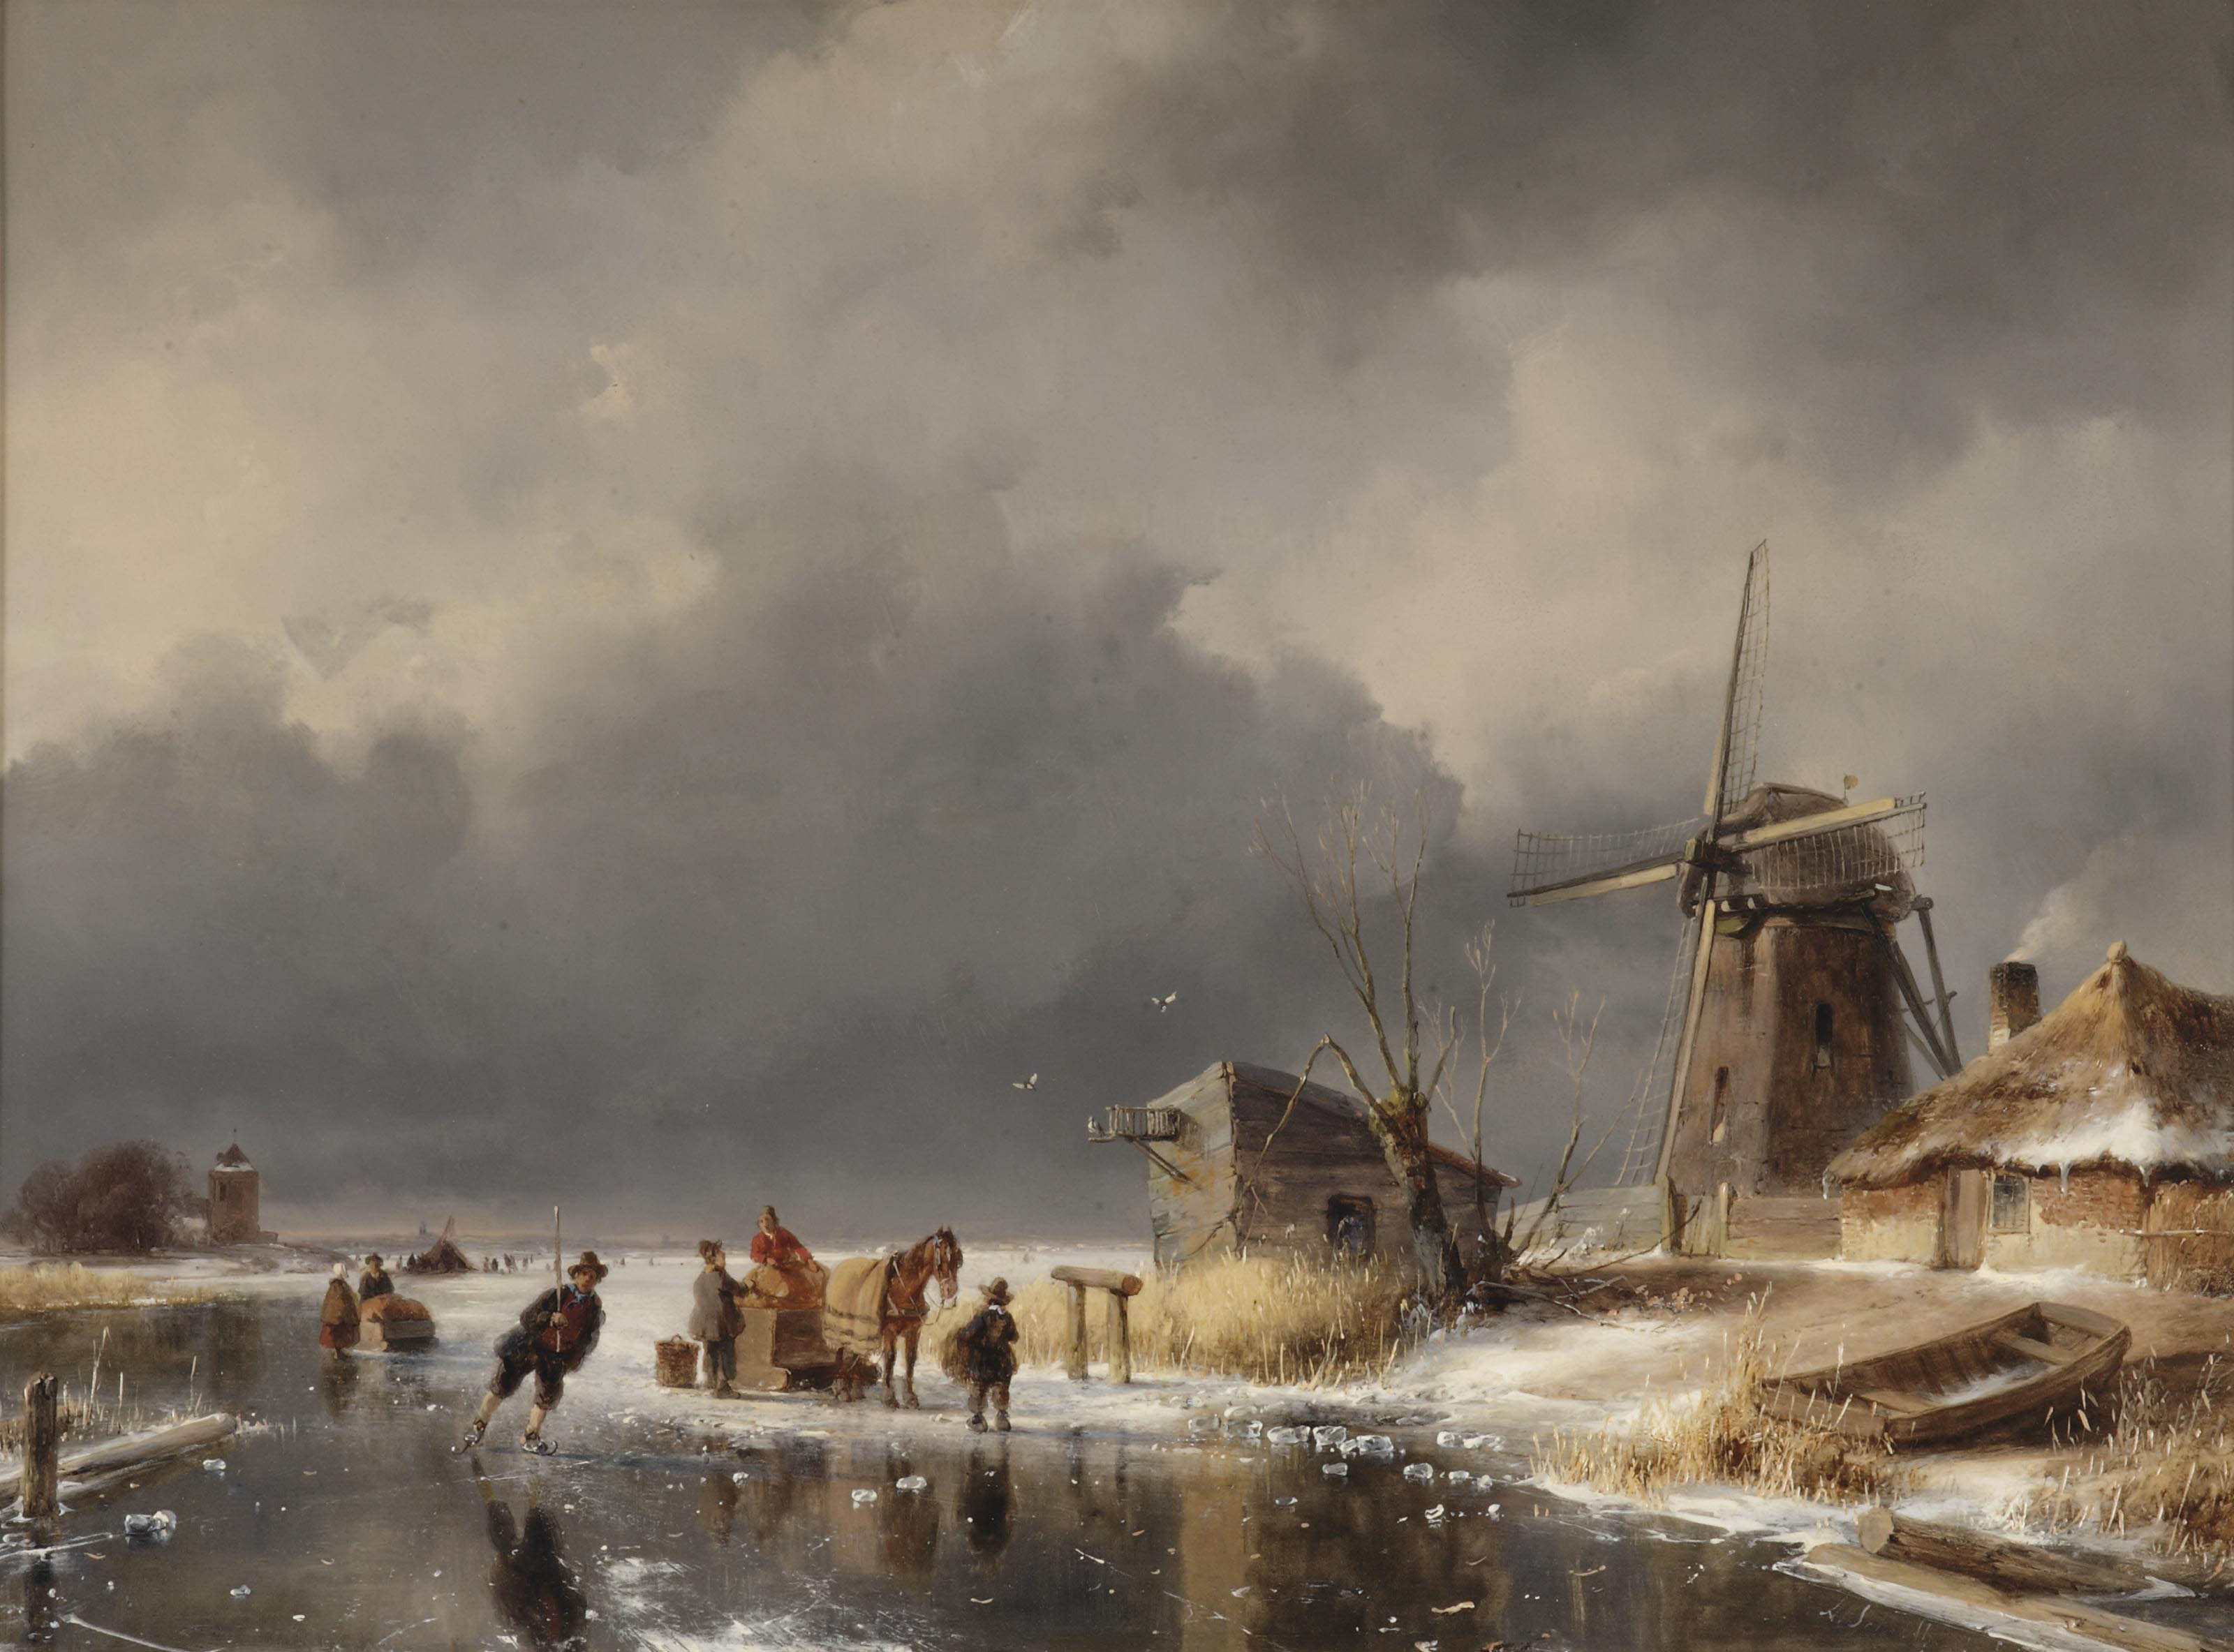 A horse-drawn sleigh and towns people on a frozen waterway